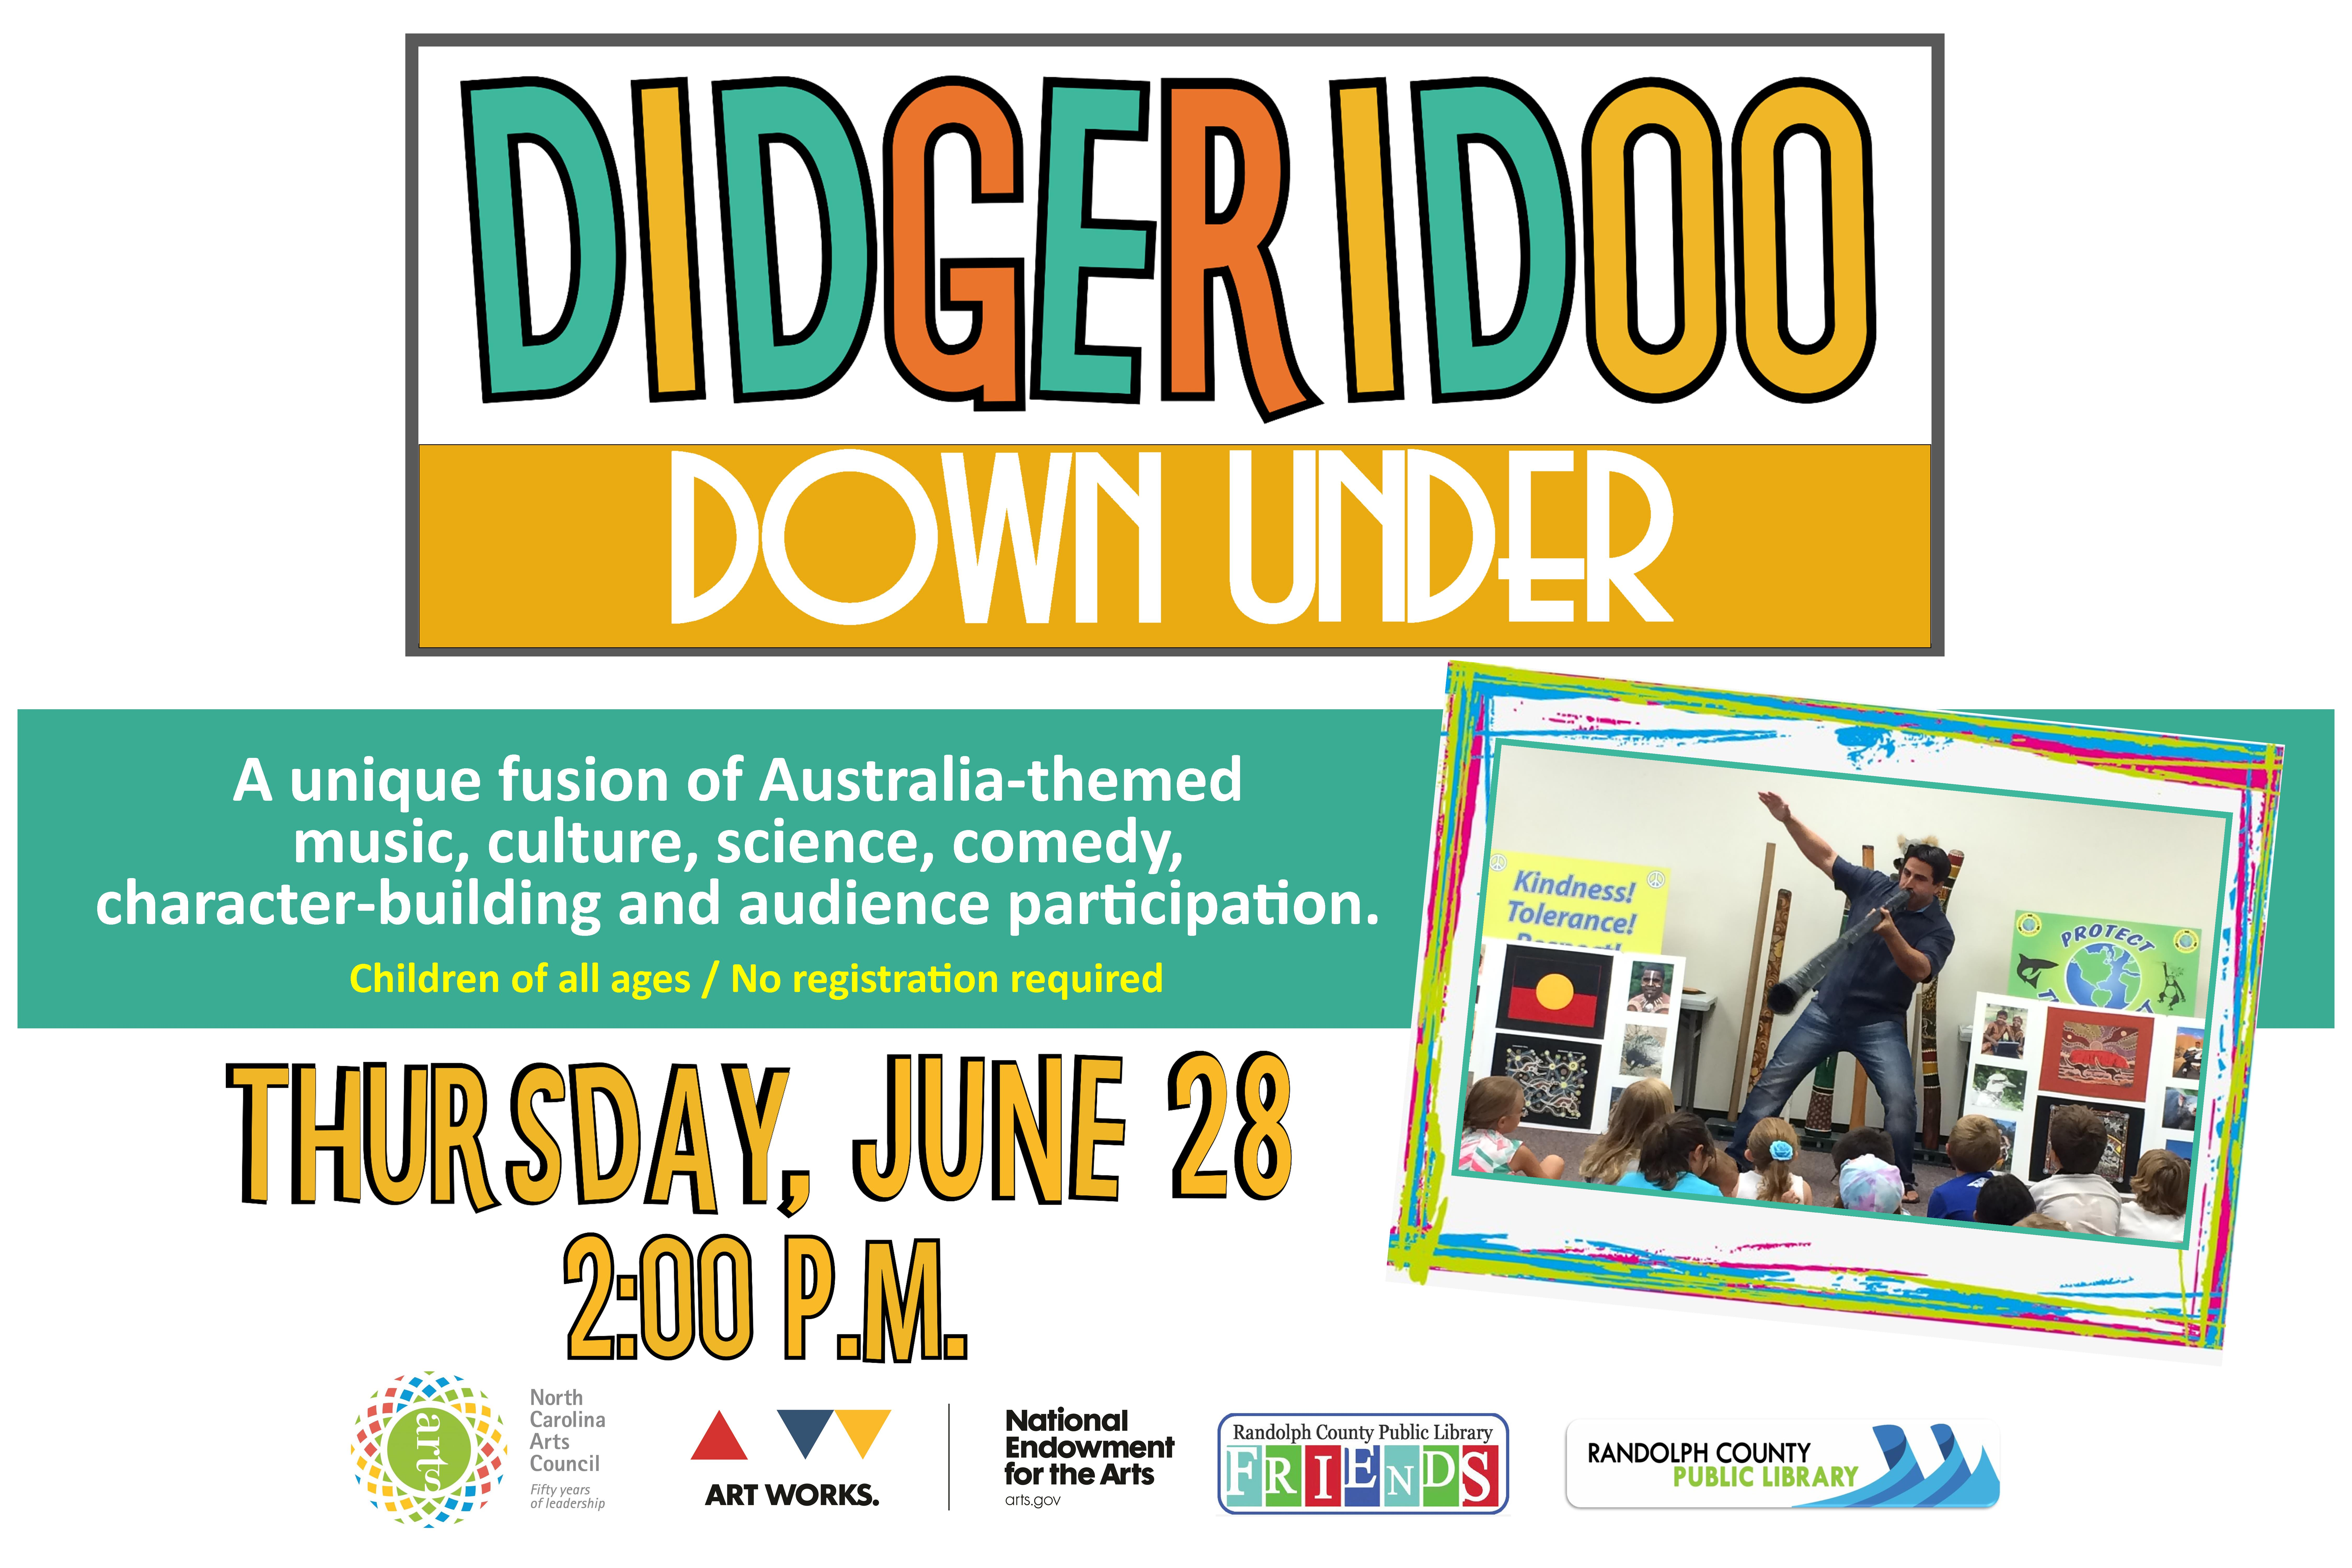 Come enjoy a musical journey to Australia at the Asheboro Library on June 28th!